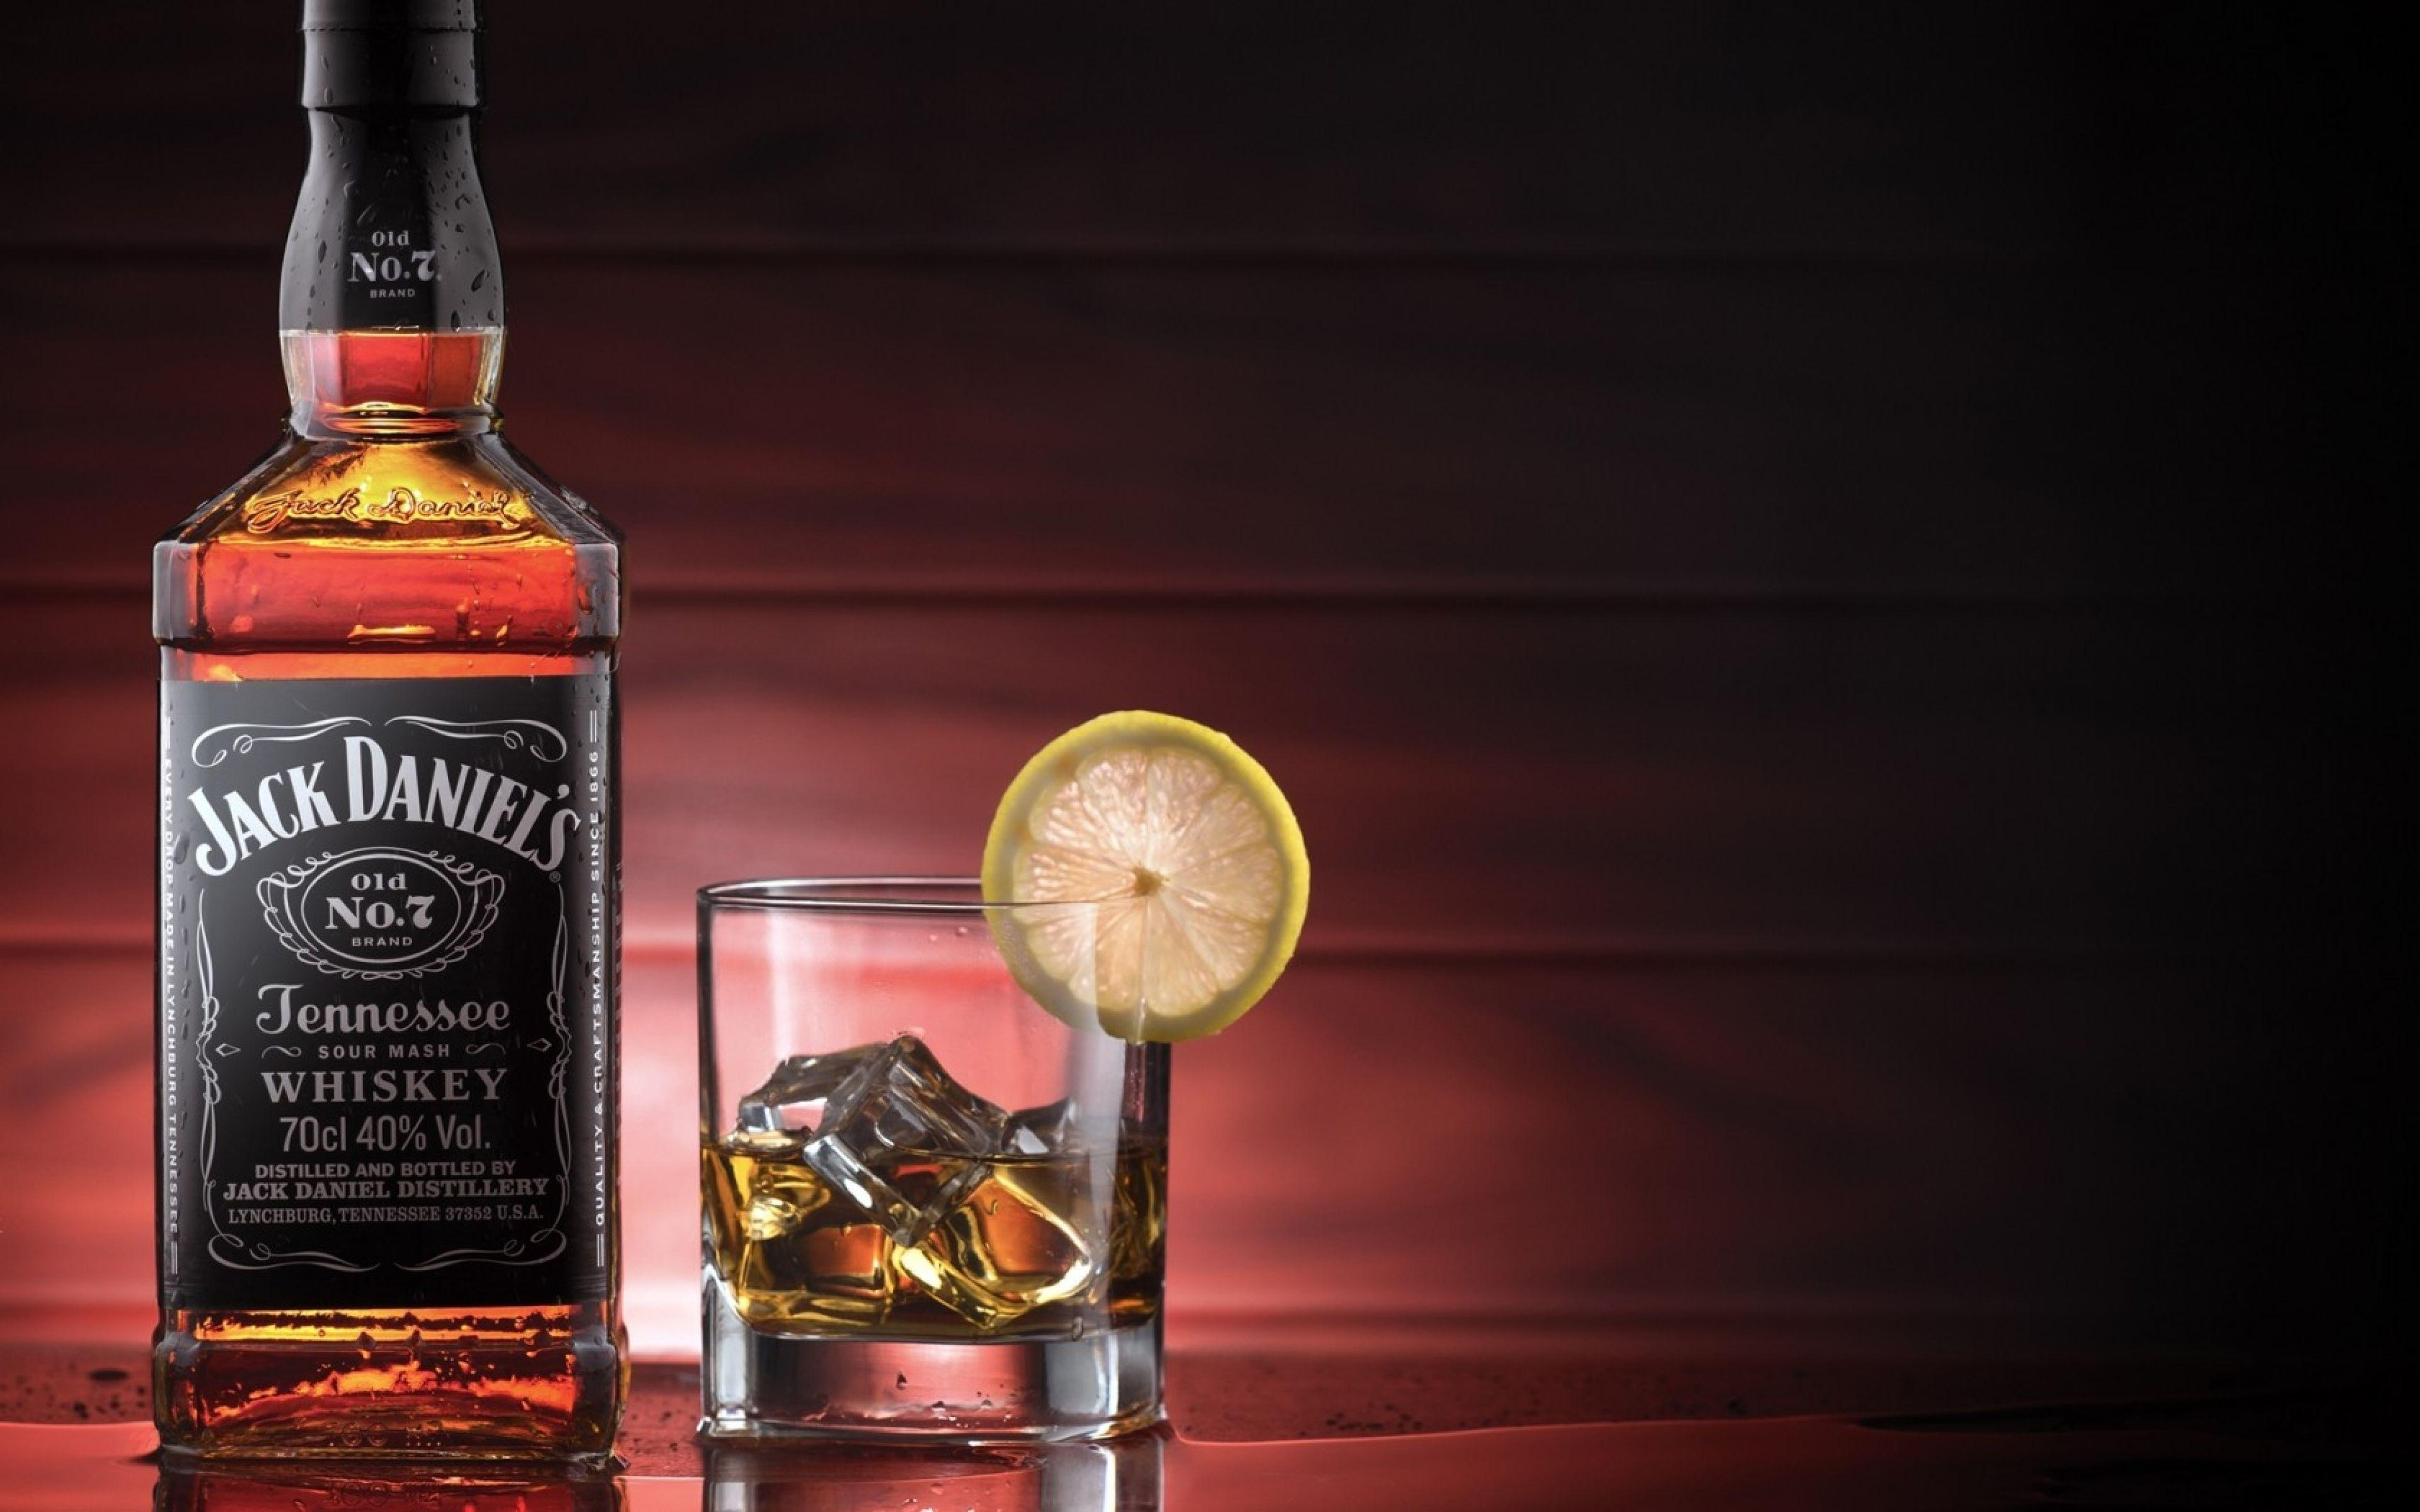 whisky 1080p wallpapers hd - photo #3